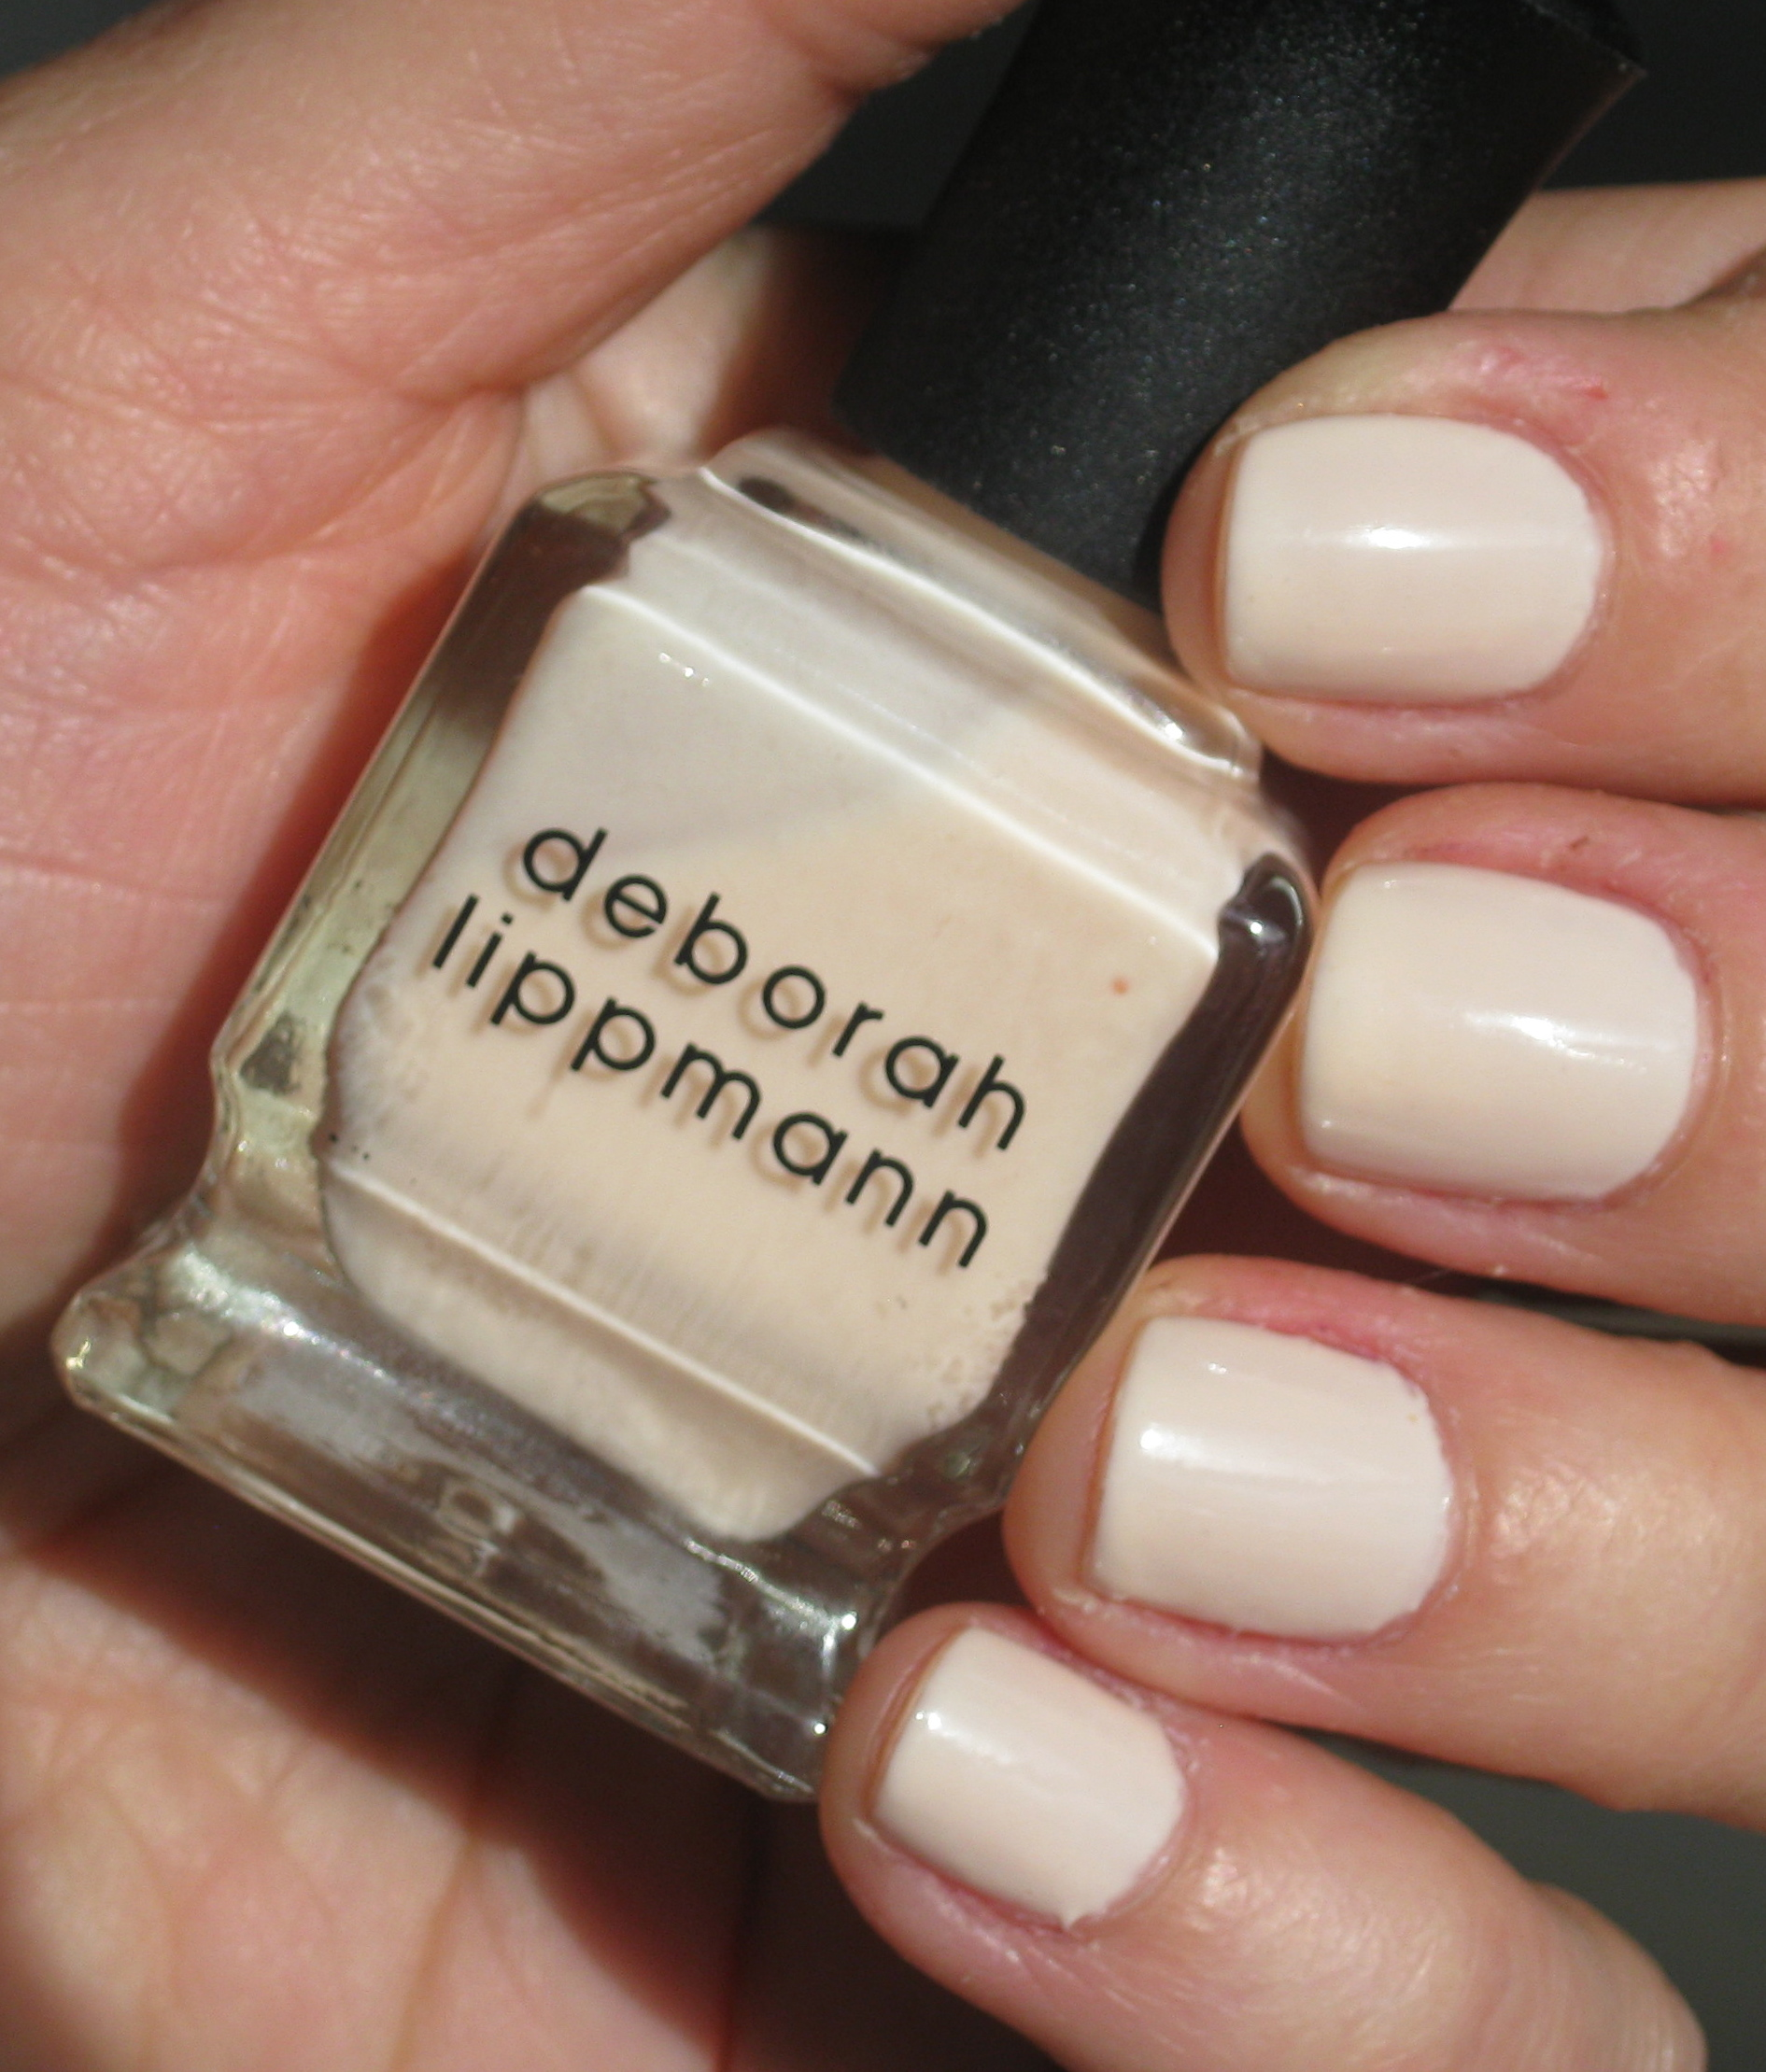 NOTW: Deborah Lippmann Sarah Smile - If Makeup Could Talk